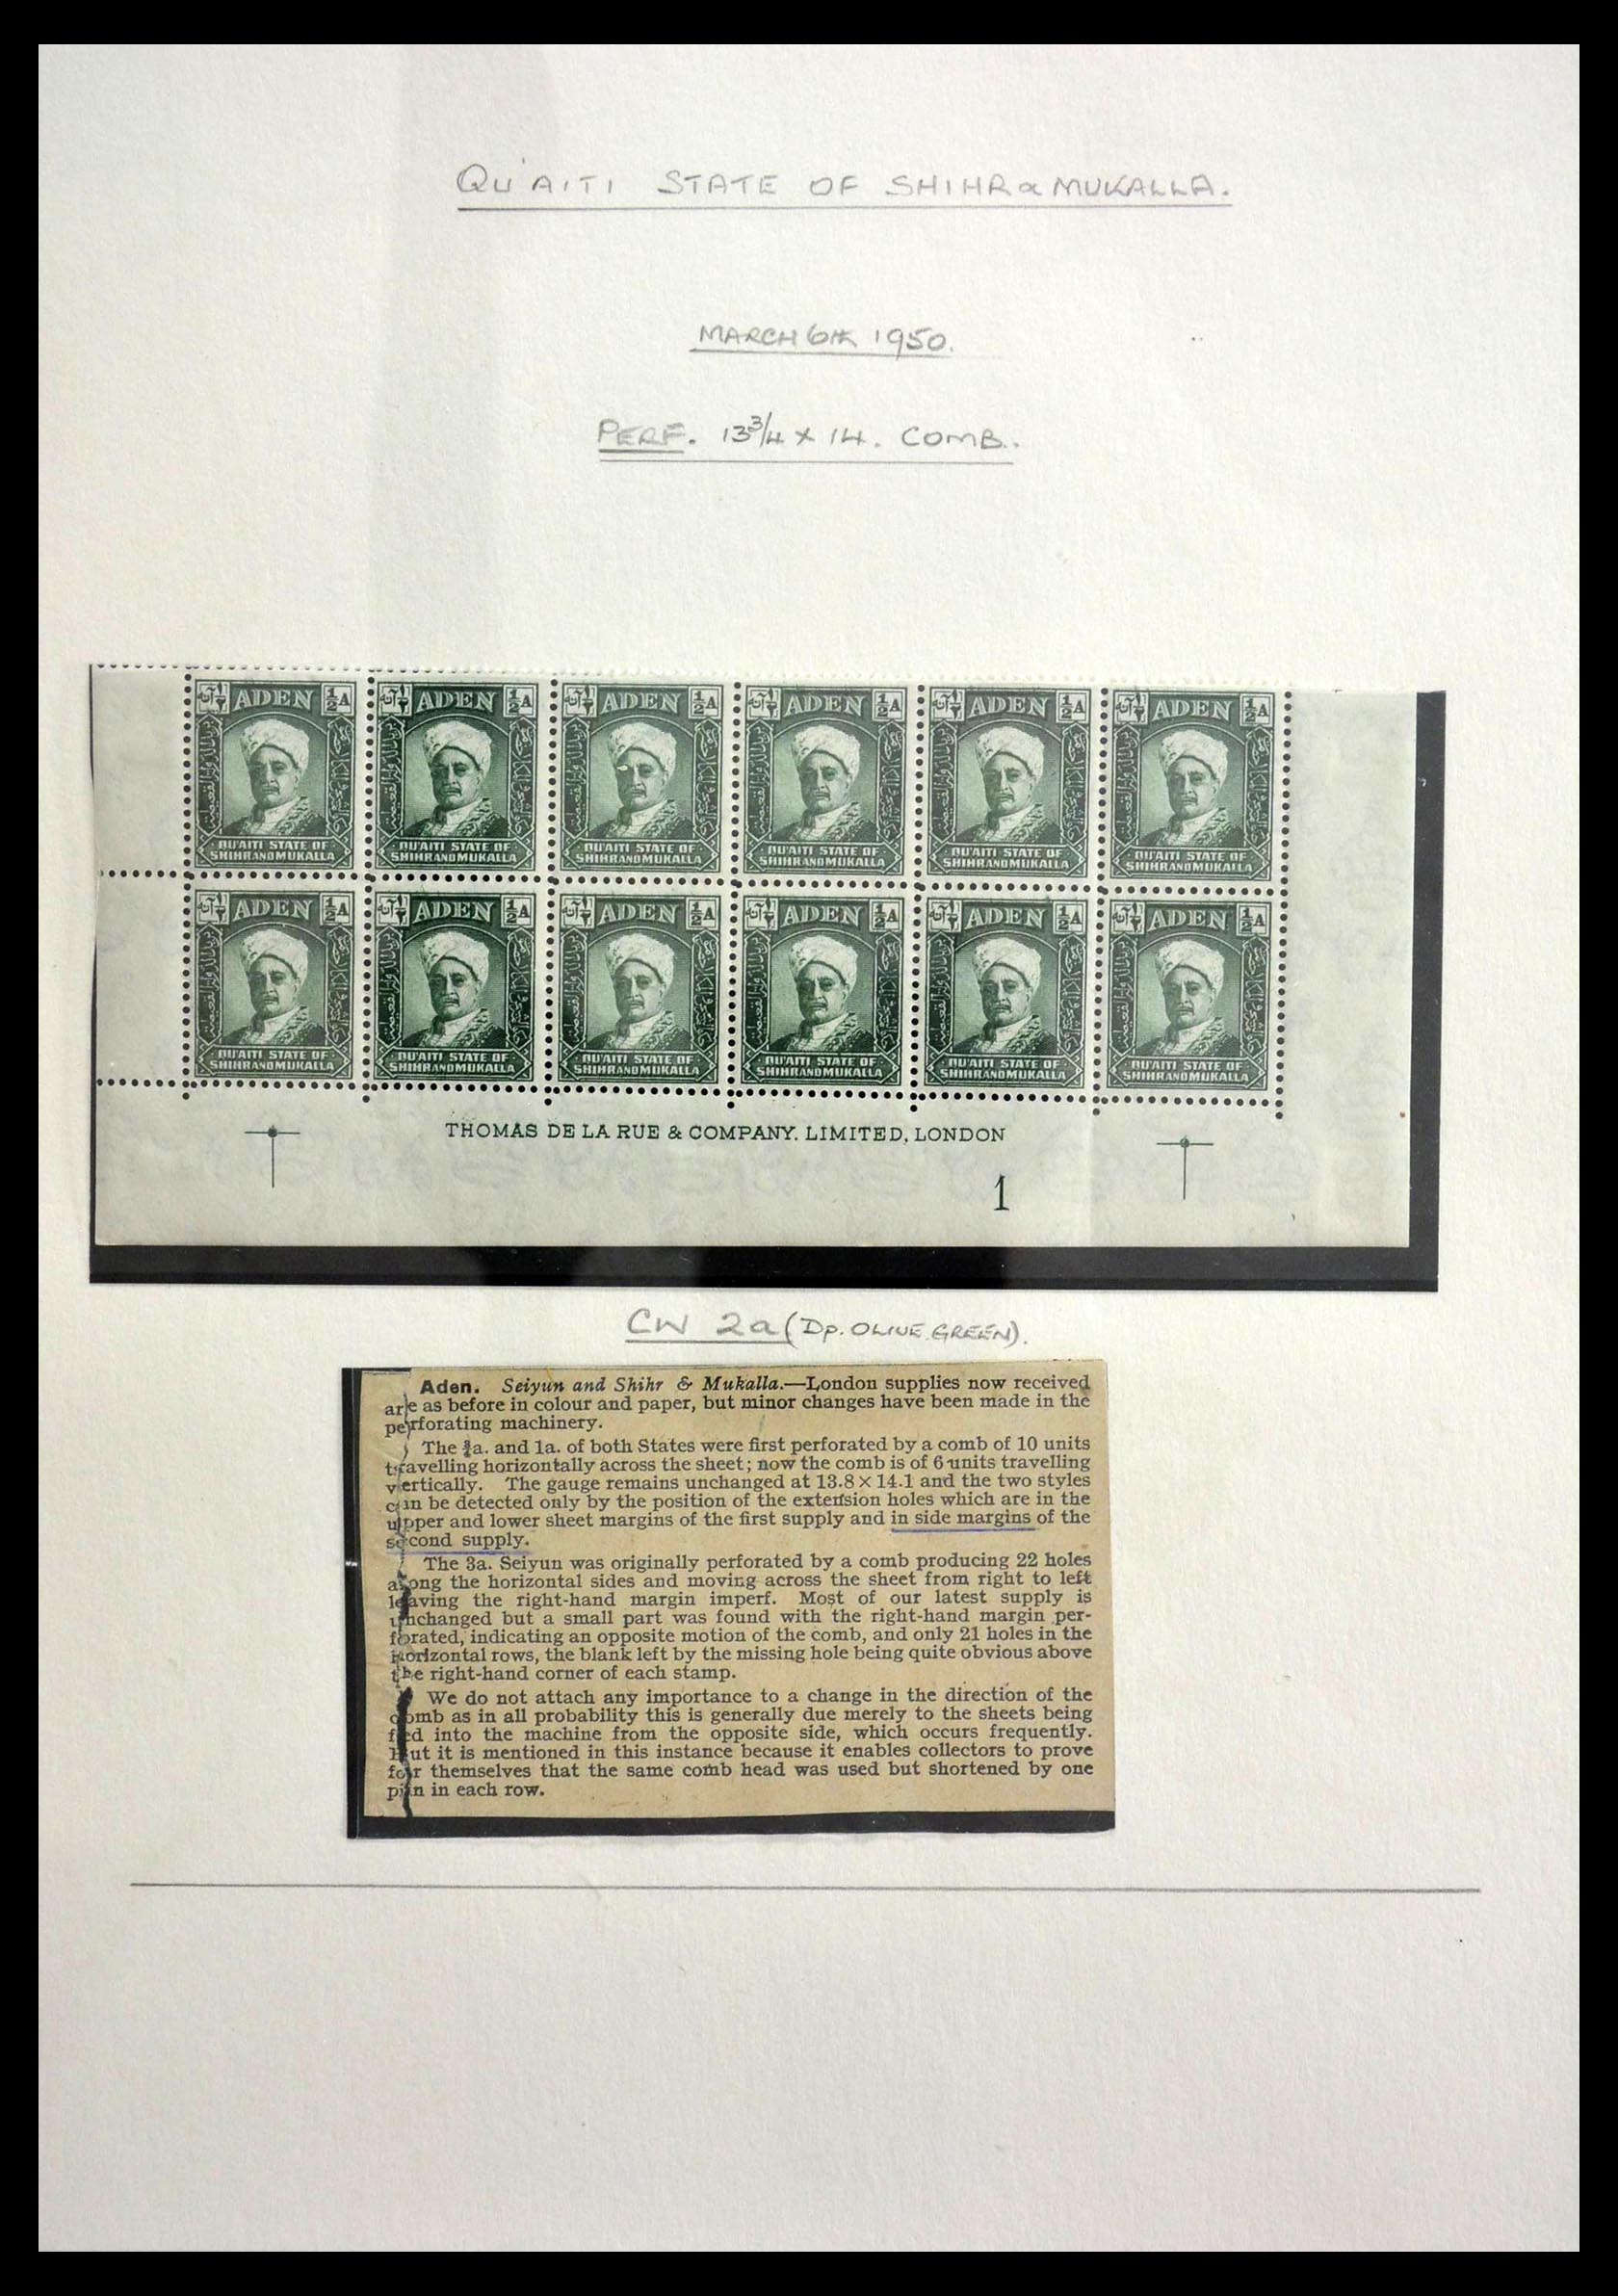 28672 003 - Stamp collection 28672 Aden Qu'aiti State 1942-1966.